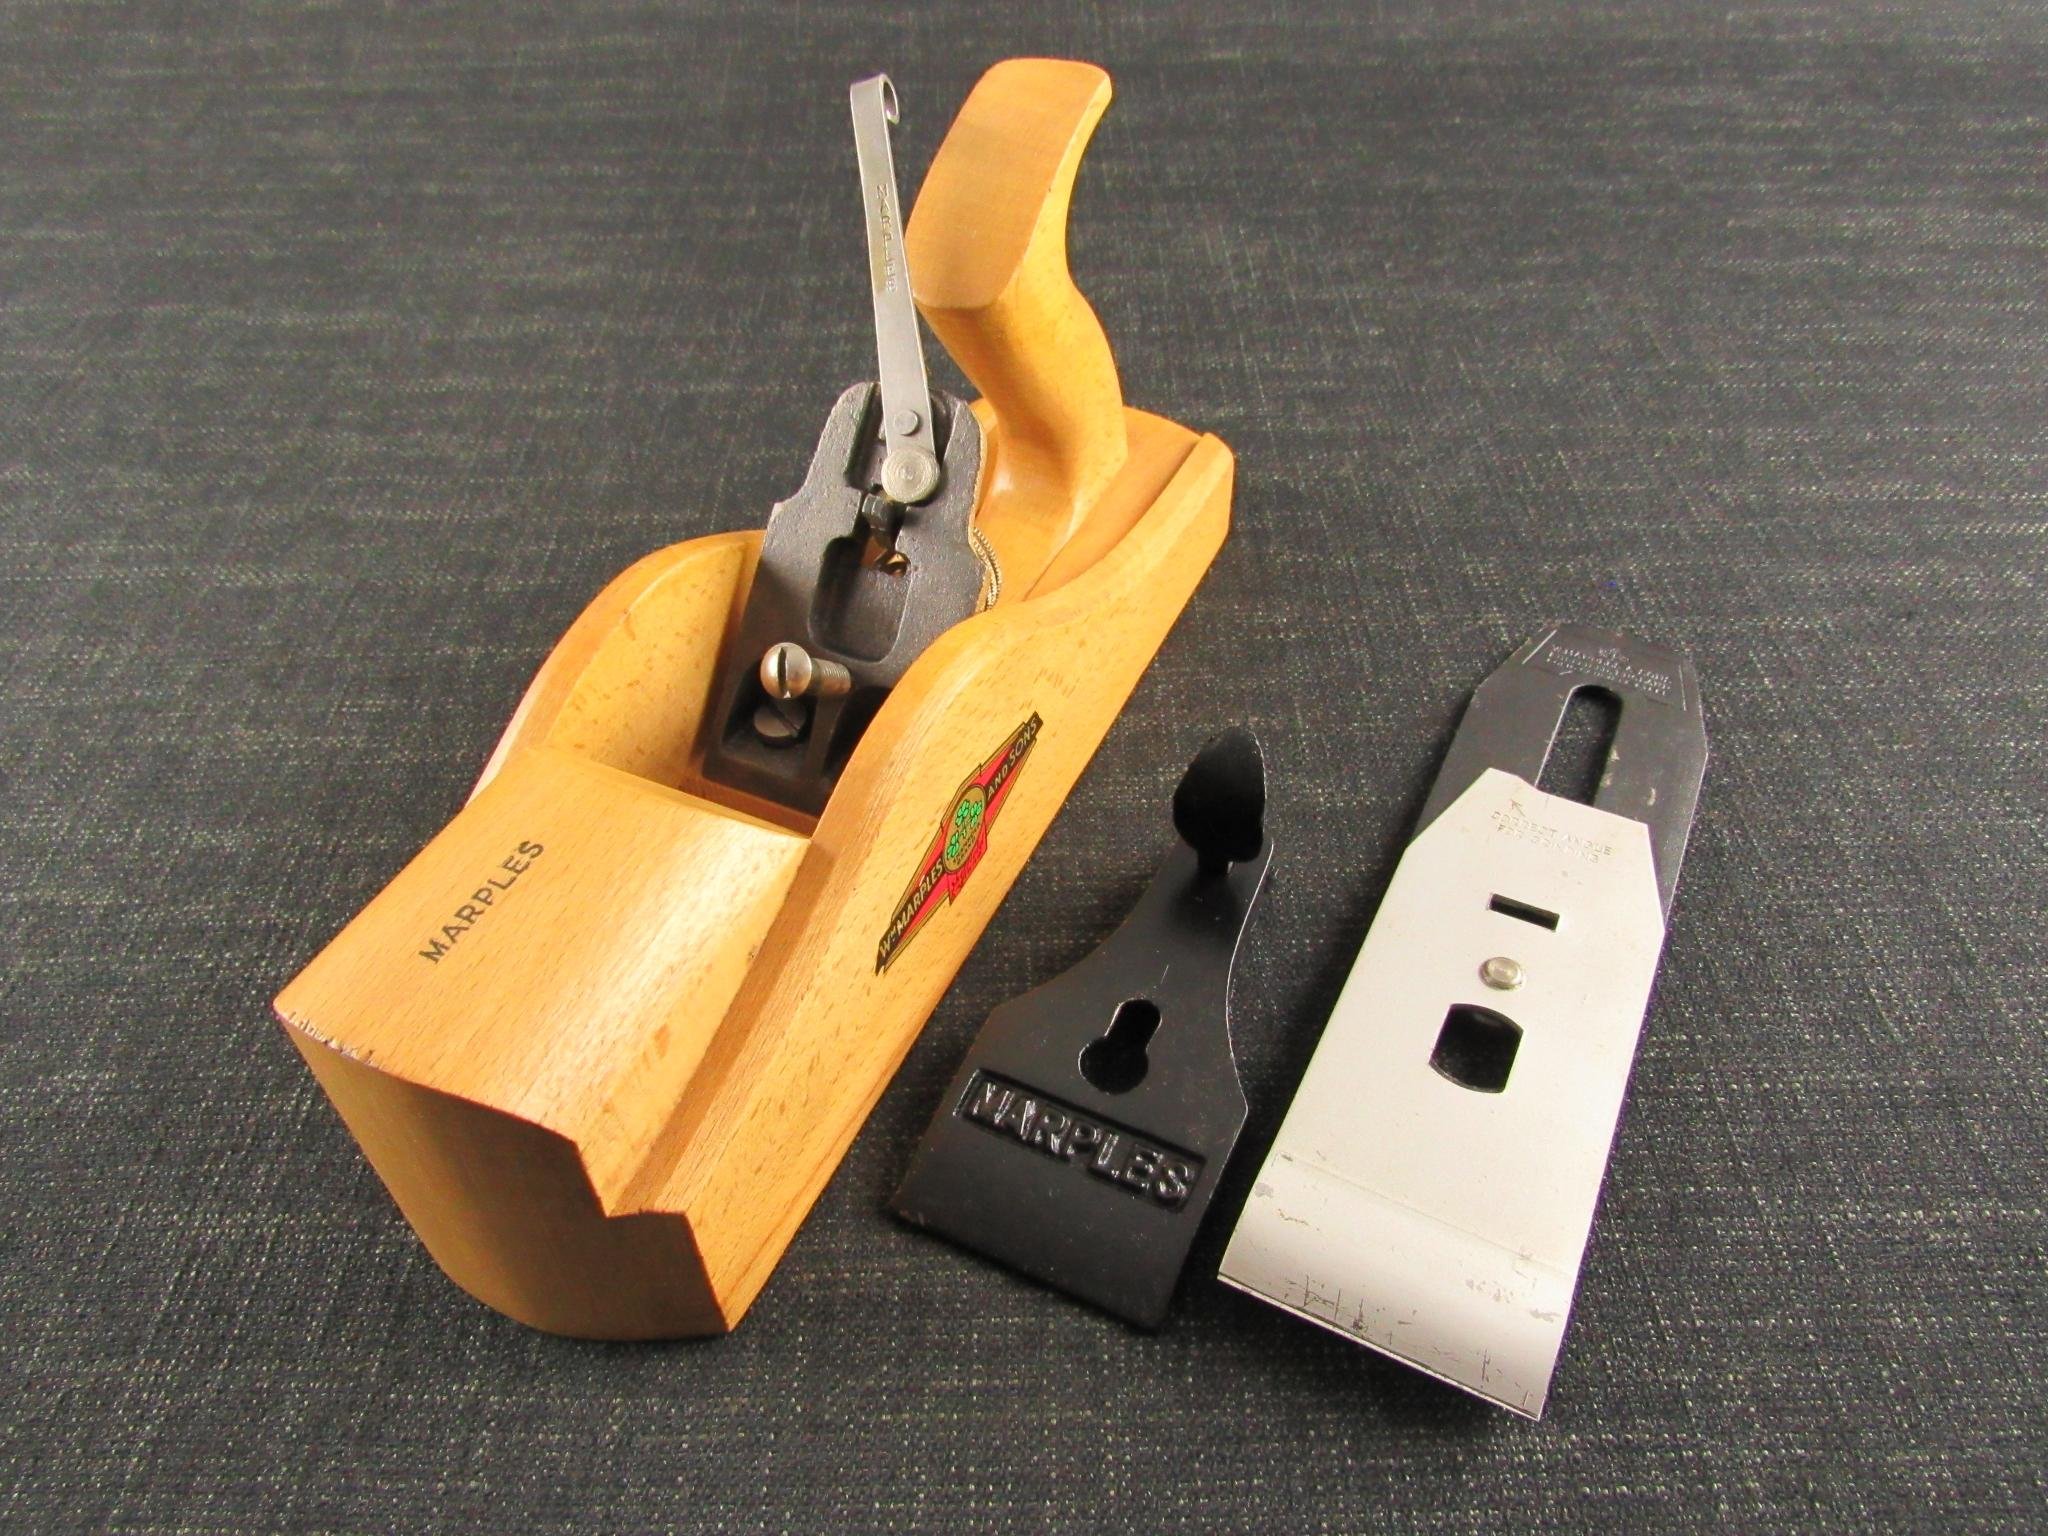 MARPLES 2690 Beechwood Adjustable Smoothing Plane - MARPLES Transitional Plane